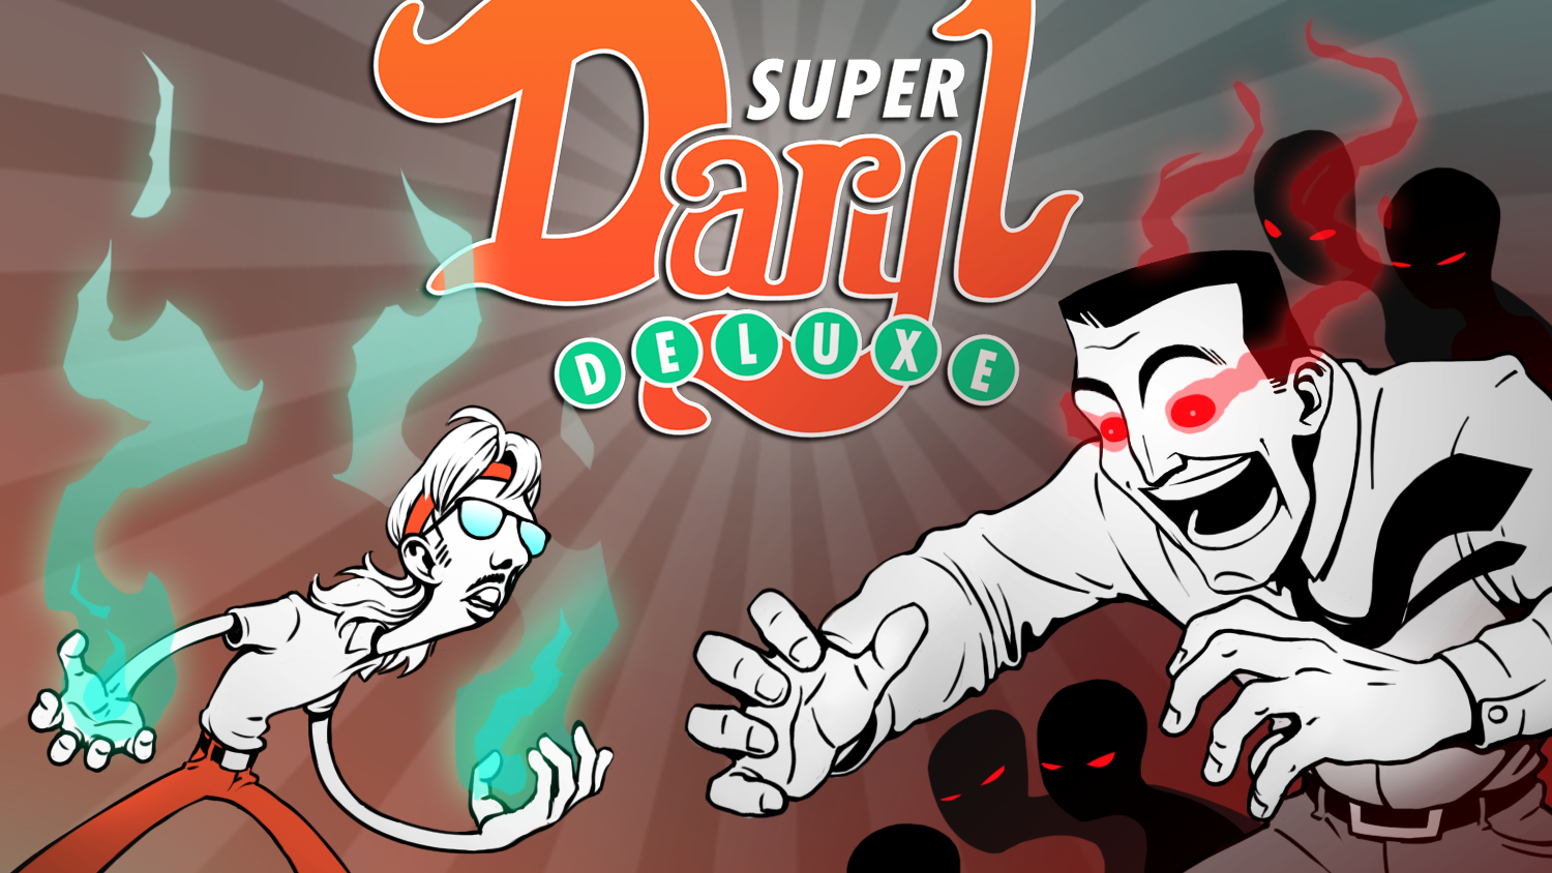 Super Daryl Deluxe is a 2D slapstick action-RPG for PC. Create your own combat system and save the world!